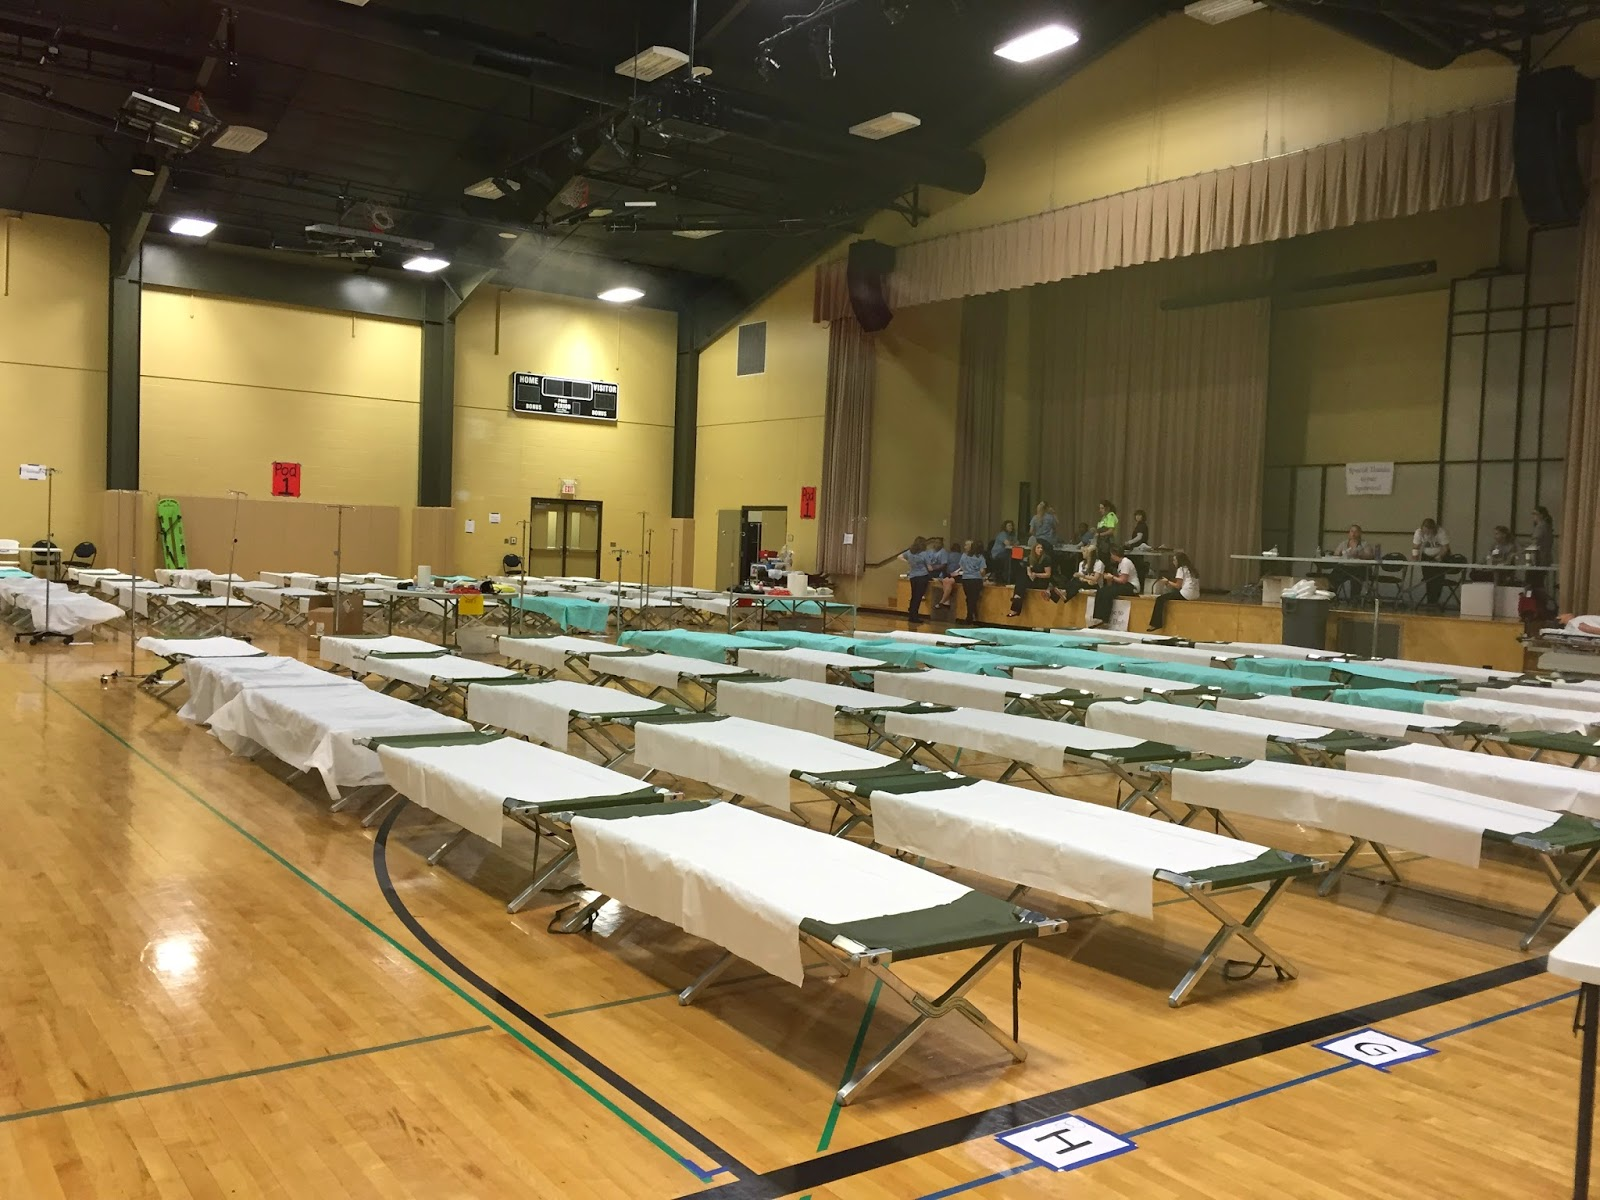 Gym set up as emergency overflow treatment center